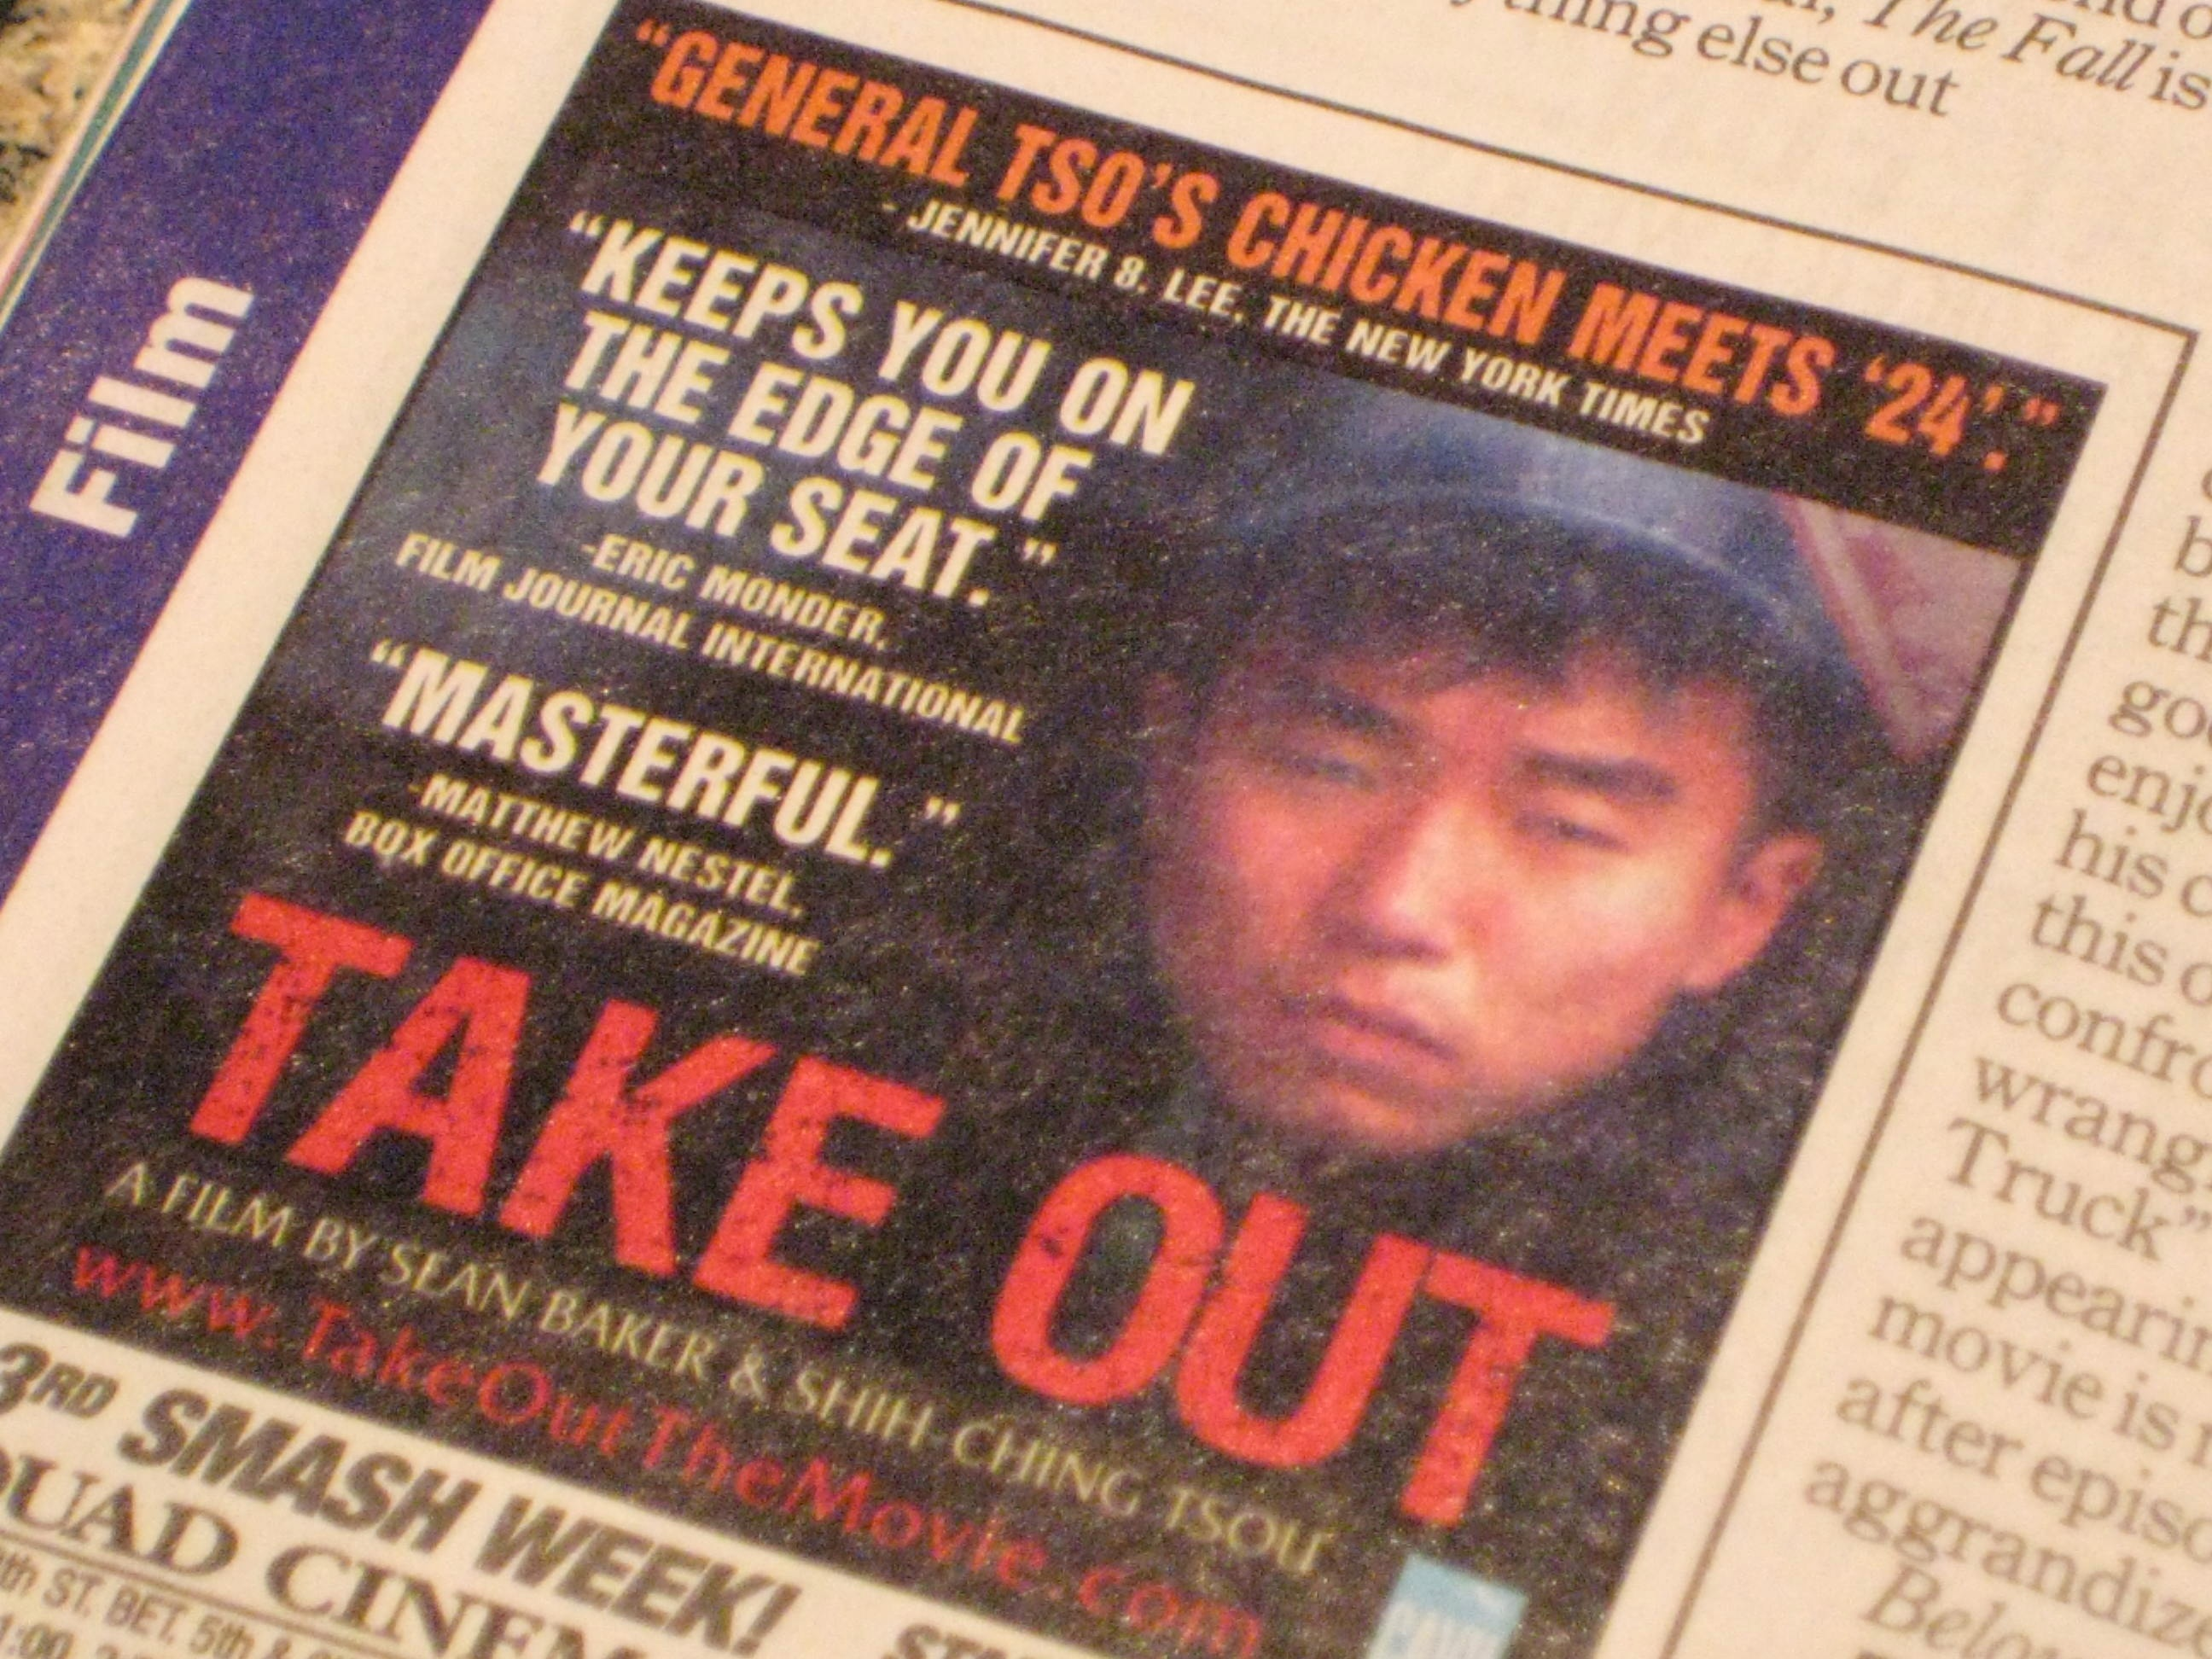 Takeout, ad in Time Out New York